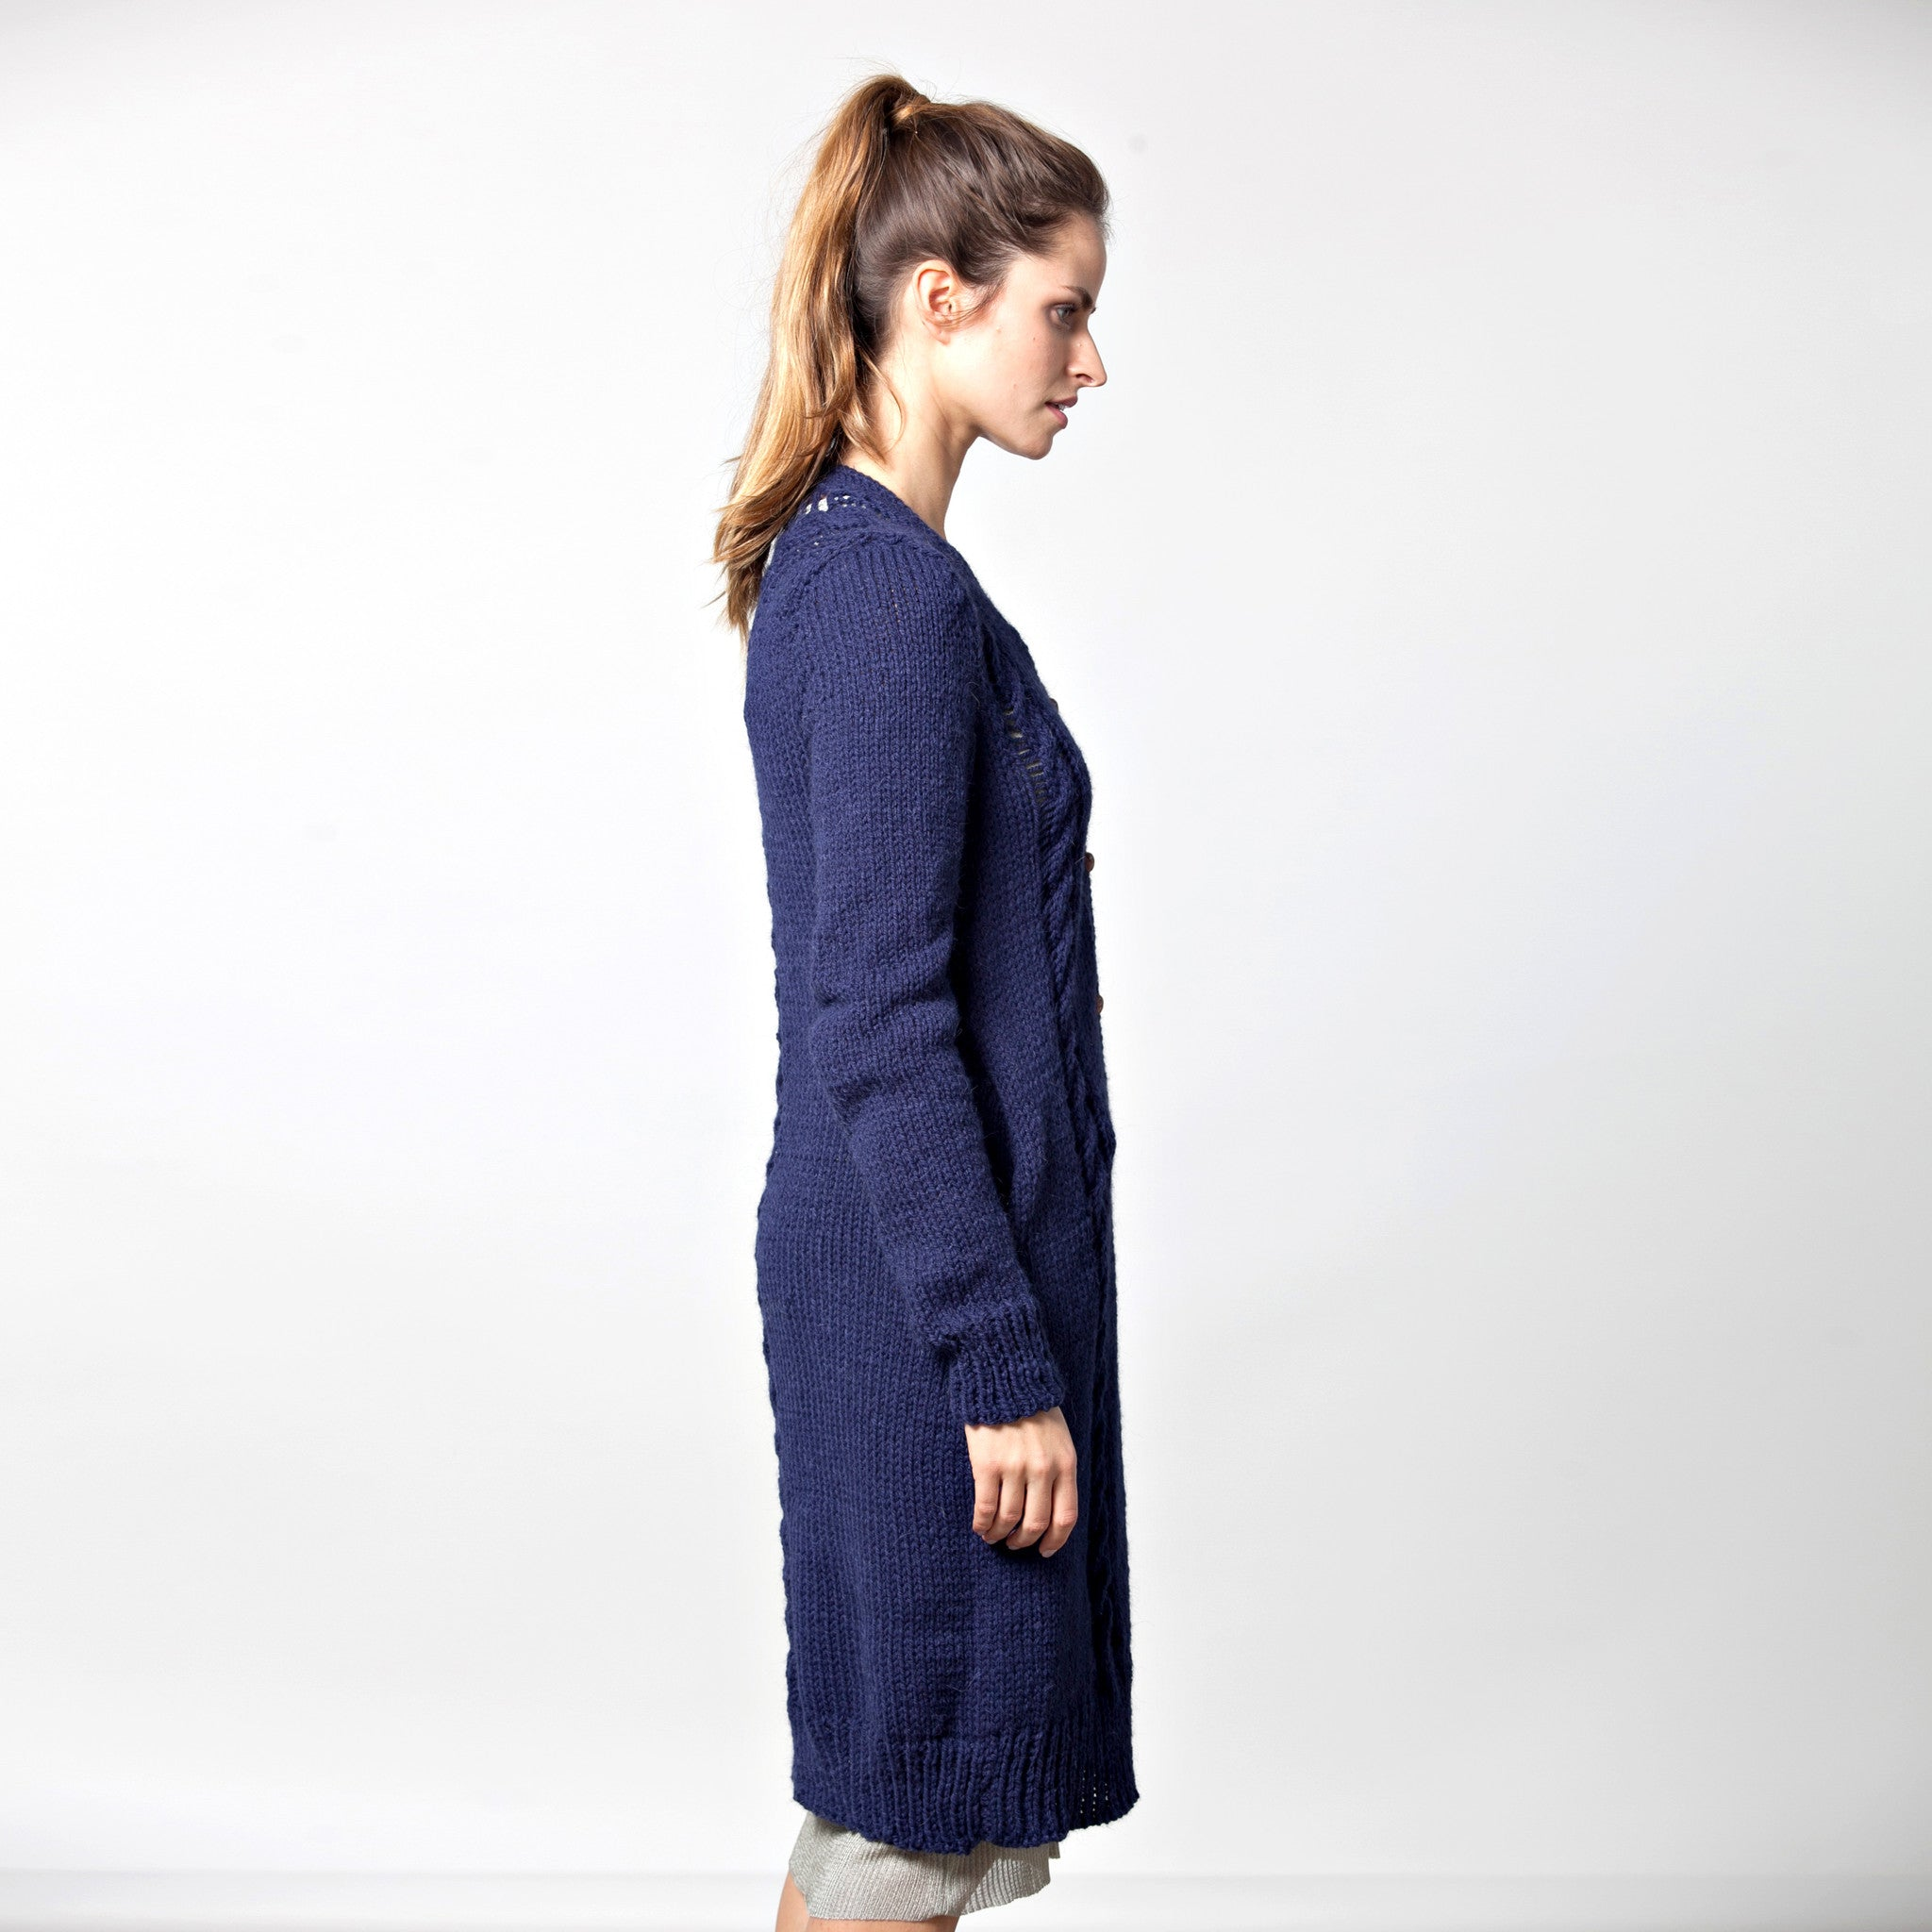 Long cable knit cardigan - DuendeFashion  - 5